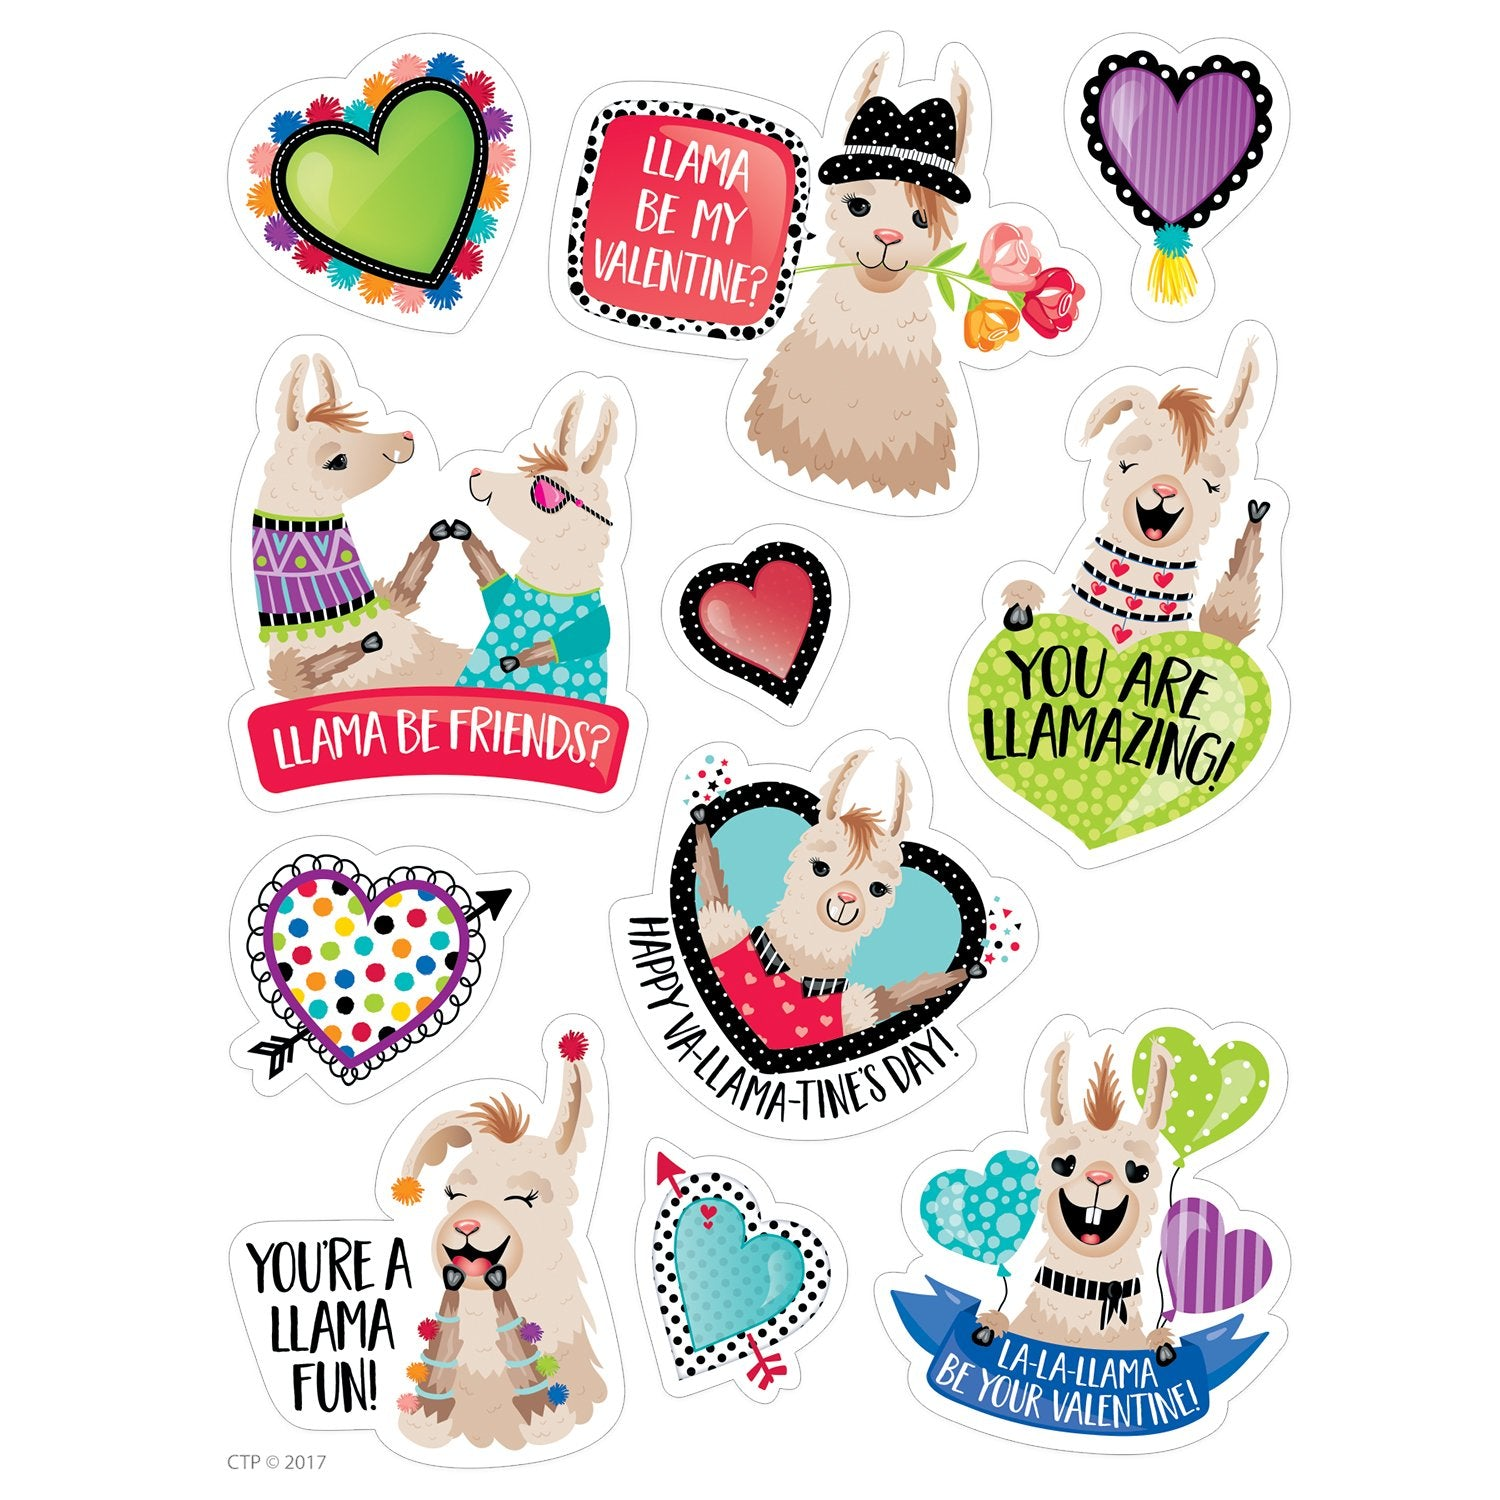 LLAMA BE MY VALENTINE? REWARD STICKERS